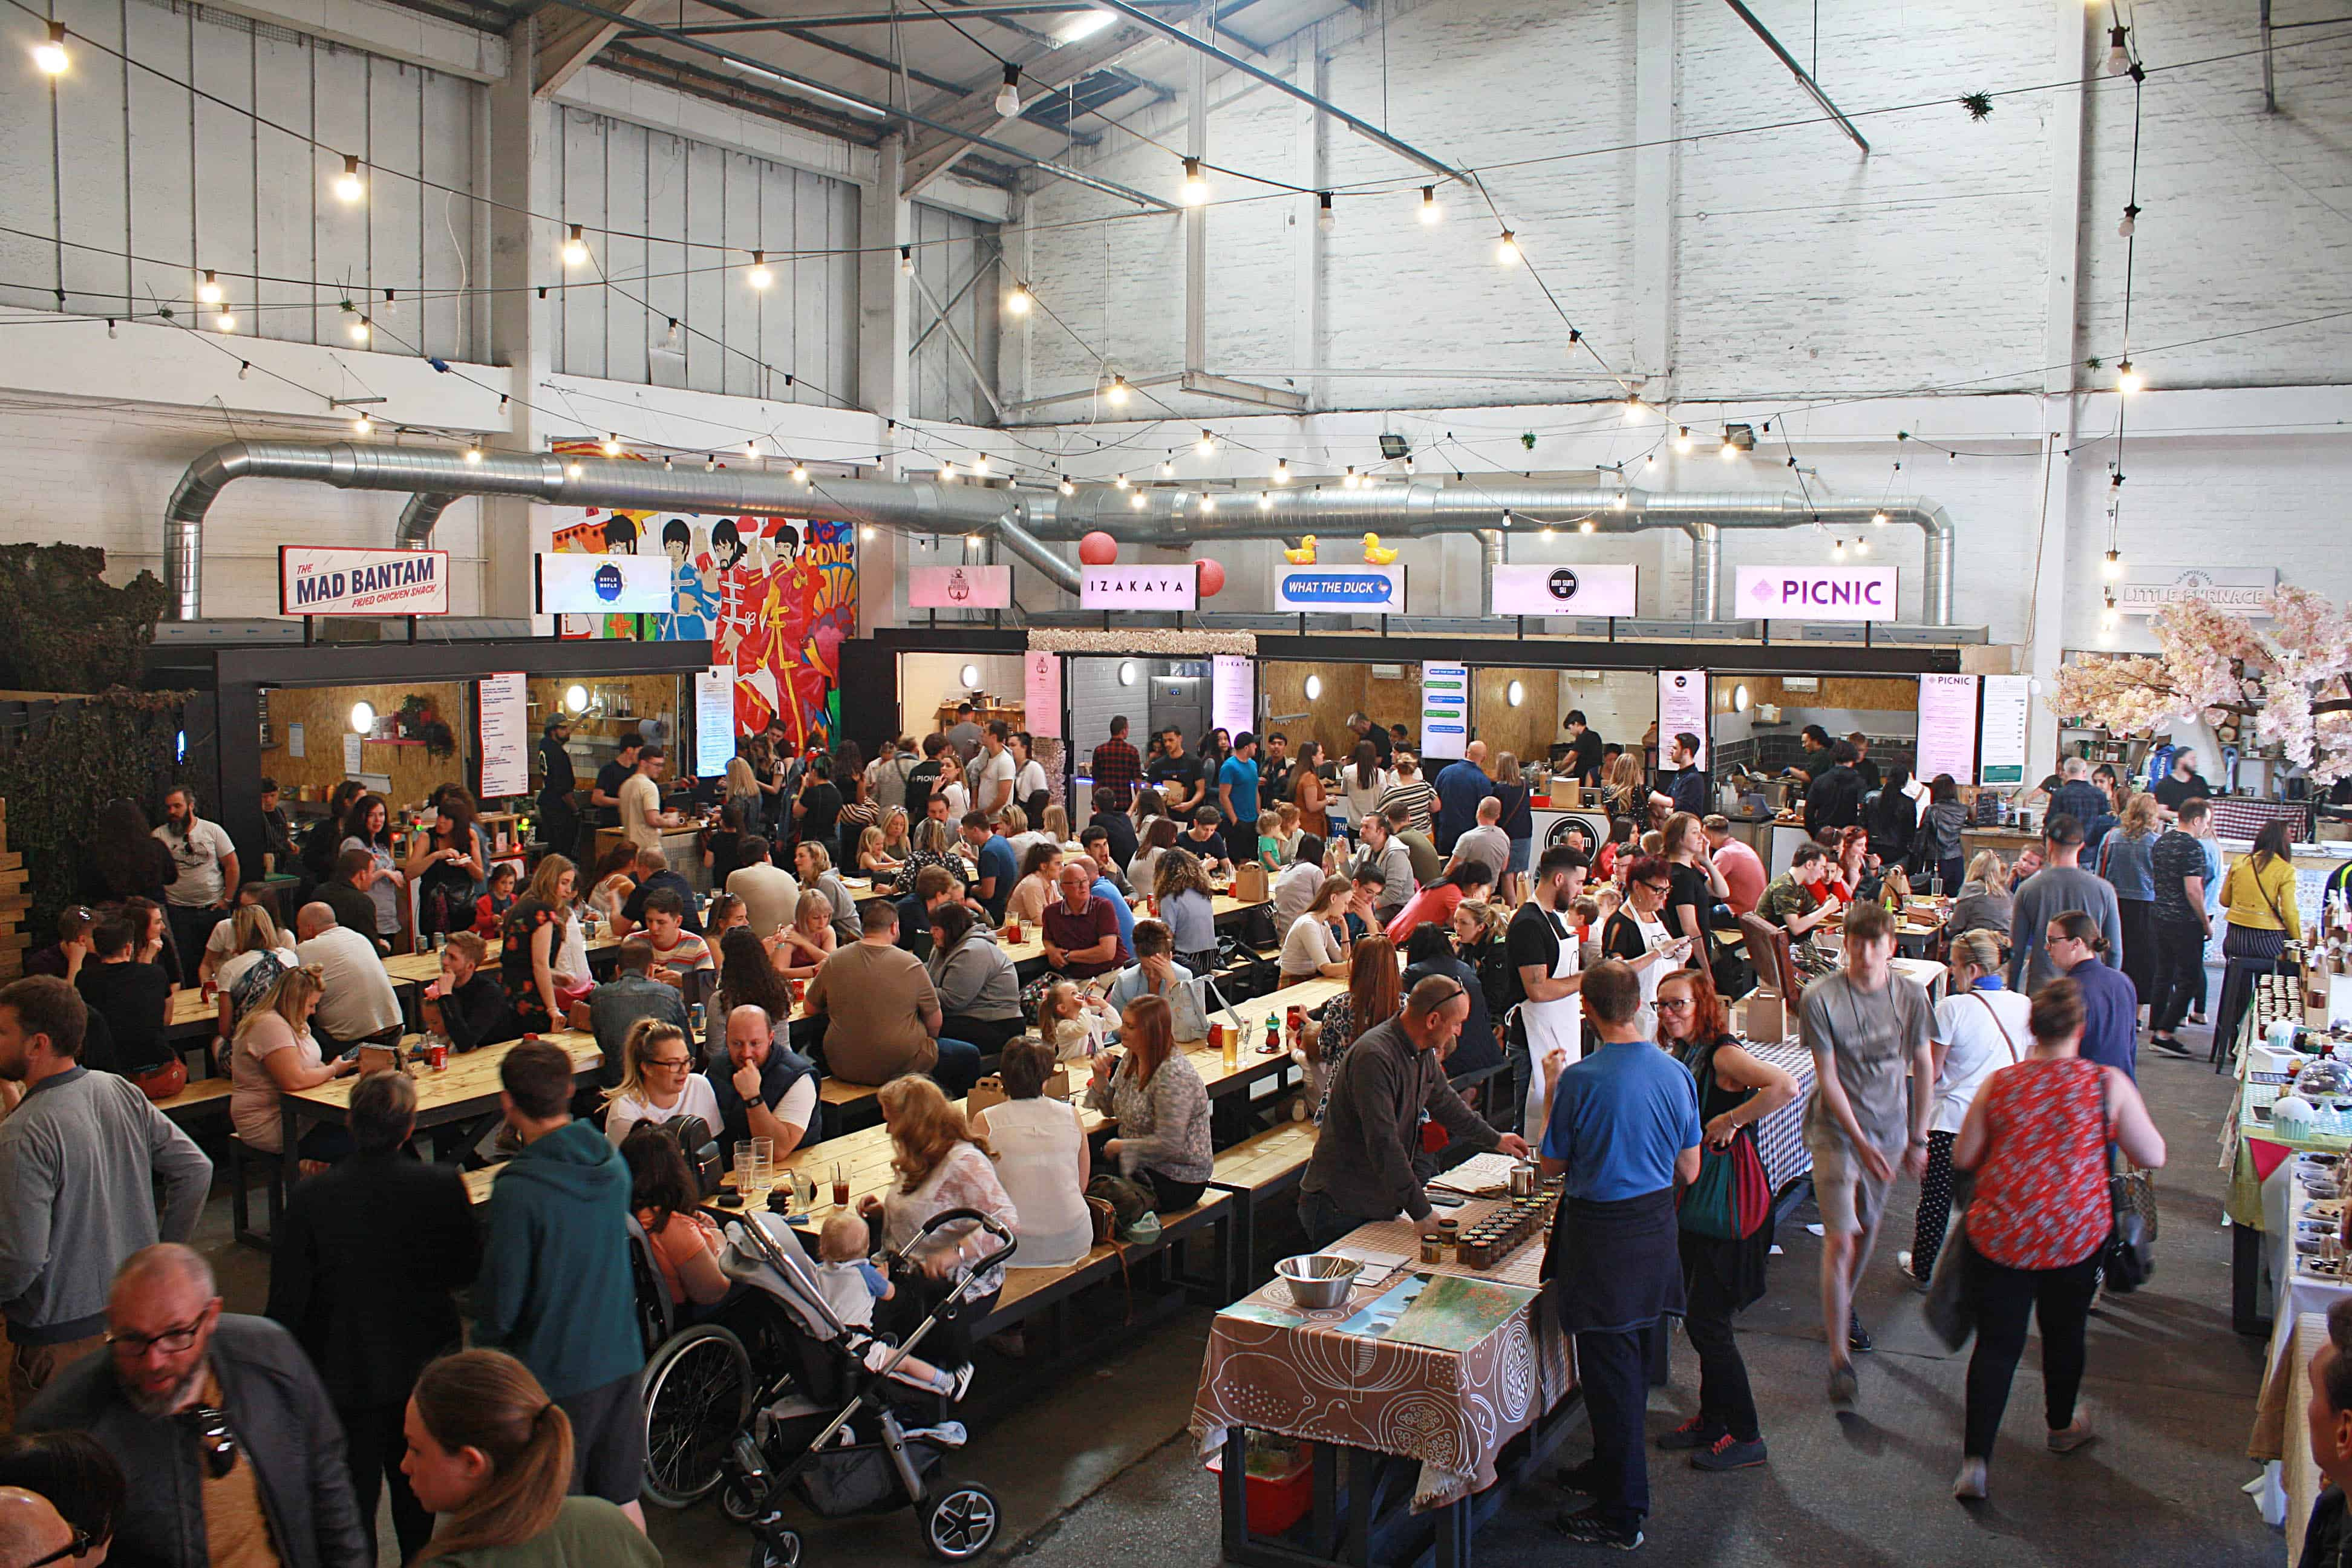 Baltic Market at Cains Brewery Village, Liverpool